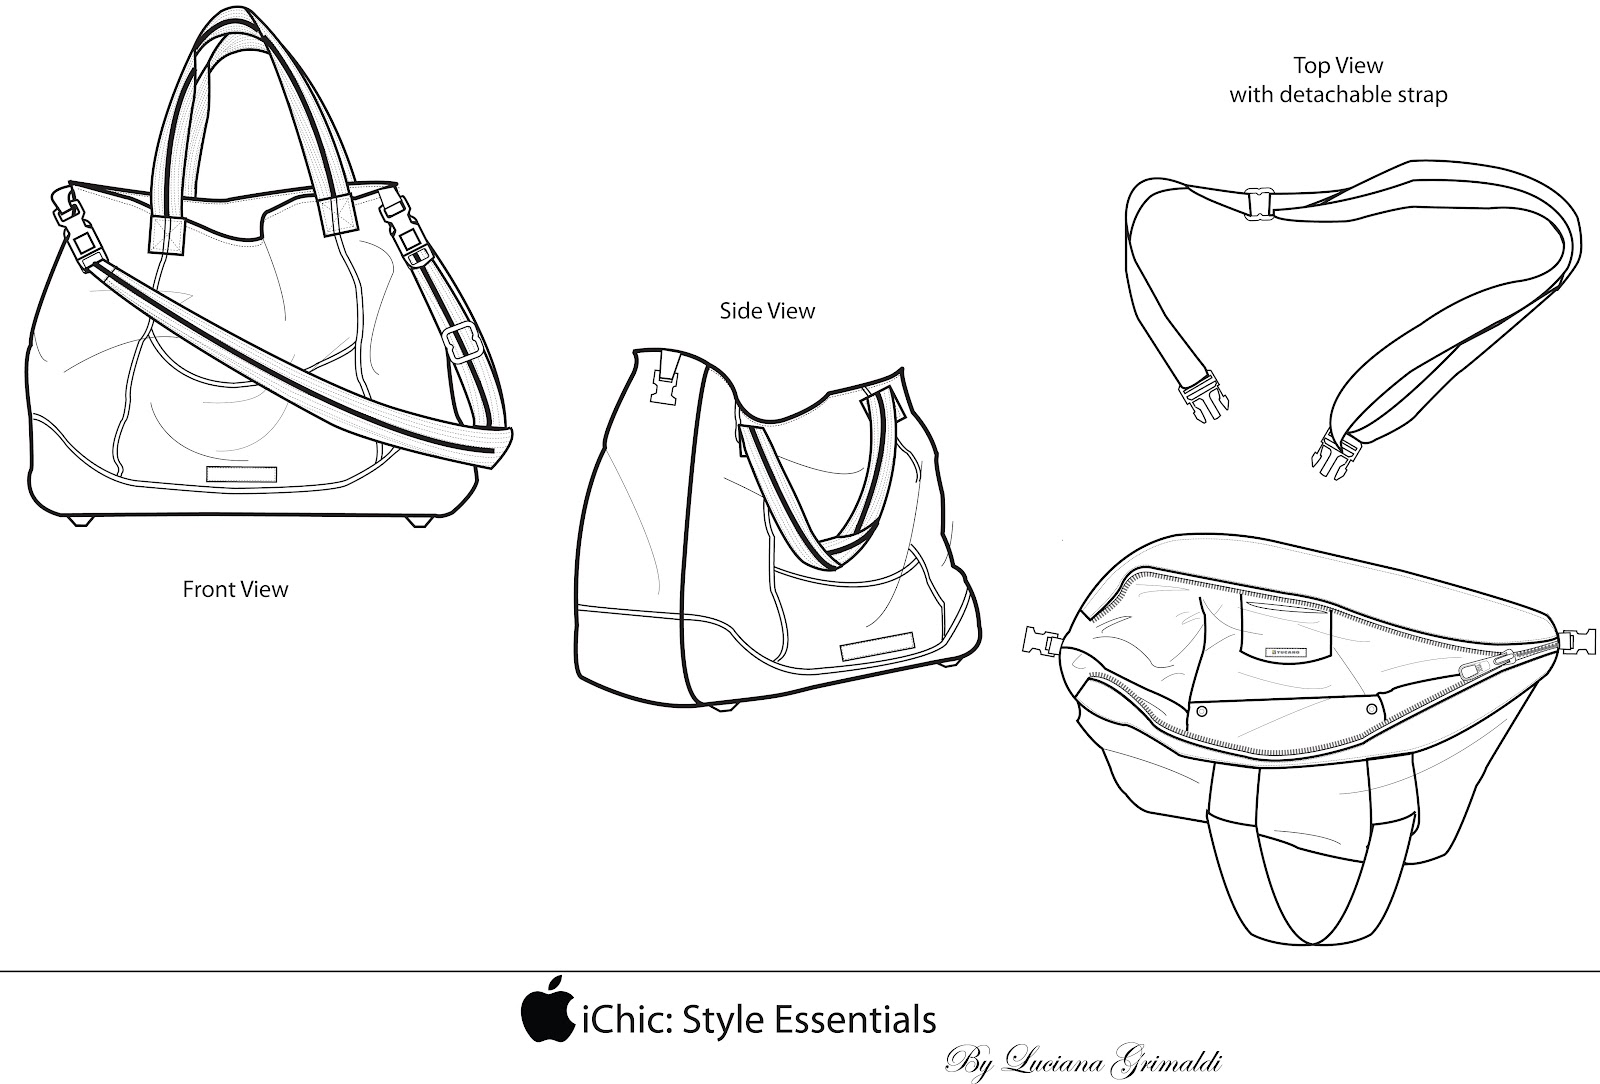 Ichic Style Essentials A Computer Bag For The Stylish